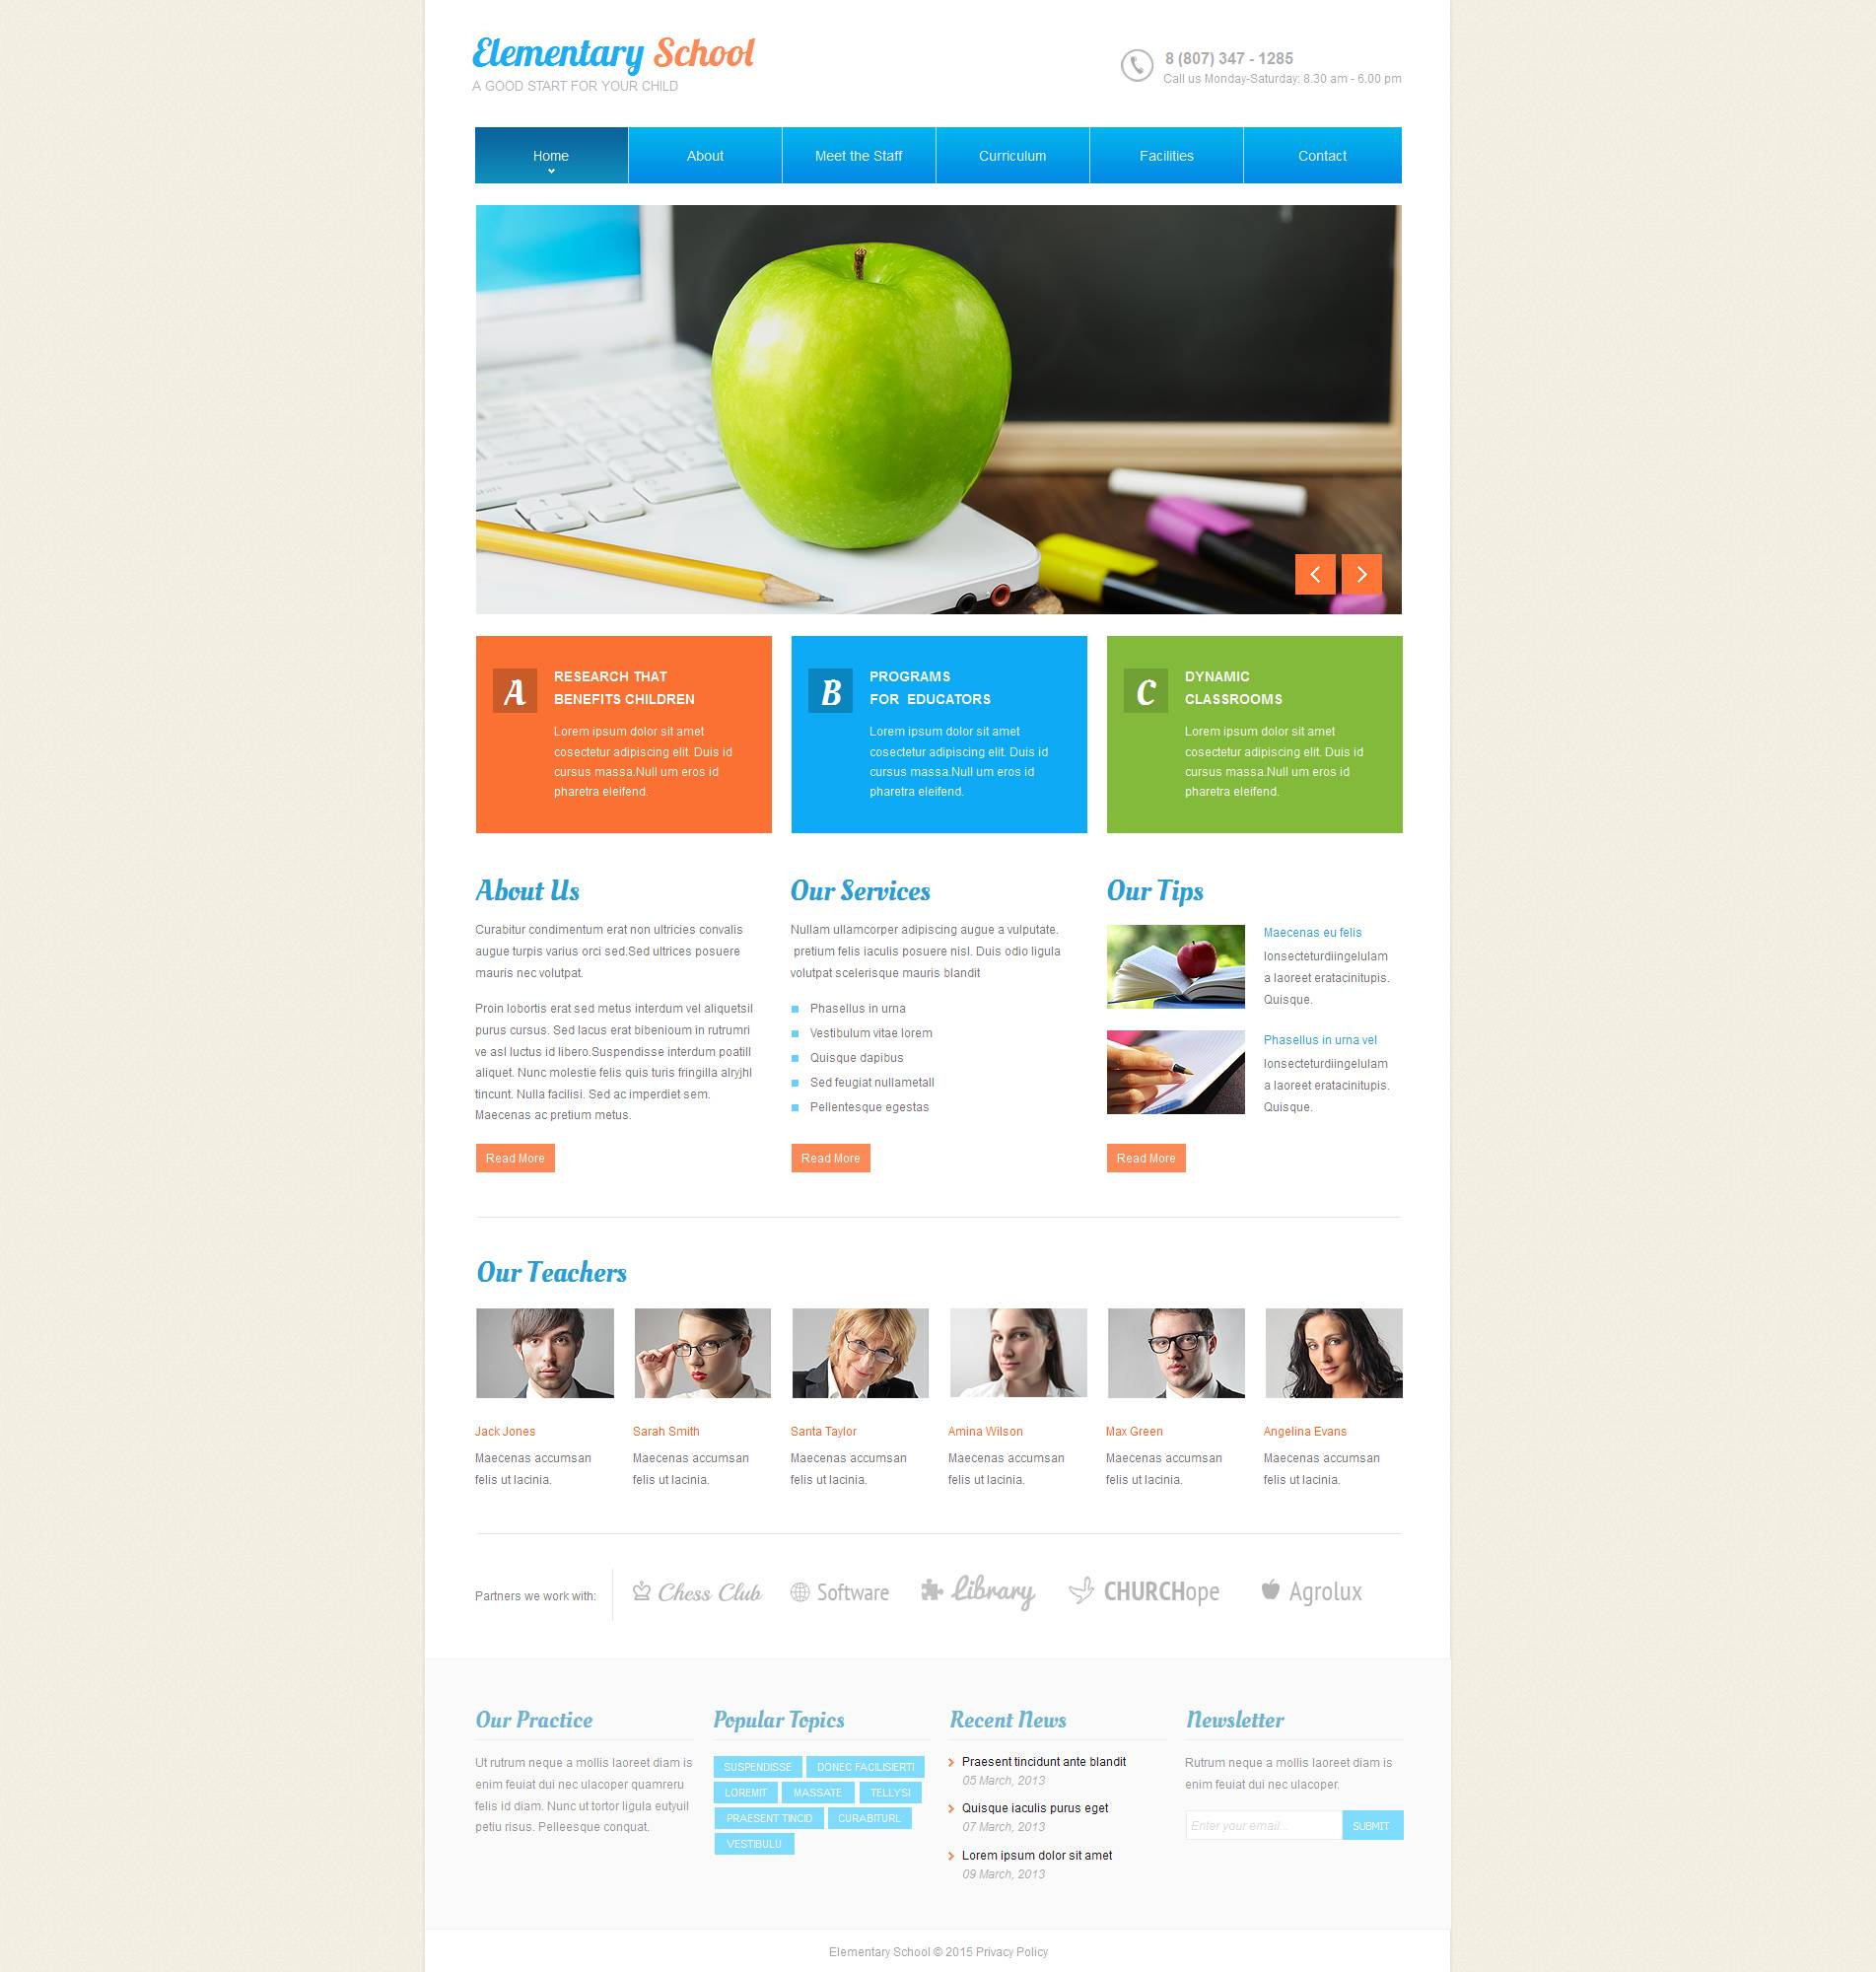 The Elementary School Moto CMS HTML Design 53510, one of the best Moto CMS HTML templates of its kind (education, most popular), also known as elementary school Moto CMS HTML template, education center Moto CMS HTML template, college Moto CMS HTML template, science Moto CMS HTML template, admission Moto CMS HTML template, faculty Moto CMS HTML template, department Moto CMS HTML template, class Moto CMS HTML template, alumni Moto CMS HTML template, student Moto CMS HTML template, professor Moto CMS HTML template, enrolment Moto CMS HTML template, union Moto CMS HTML template, library Moto CMS HTML template, auditorium Moto CMS HTML template, graduate Moto CMS HTML template, direction Moto CMS HTML template, tests Moto CMS HTML template, entrance Moto CMS HTML template, examination Moto CMS HTML template, exam Moto CMS HTML template, sport Moto CMS HTML template, community Moto CMS HTML template, party Moto CMS HTML template, administration Moto CMS HTML template, rector Moto CMS HTML template, head Moto CMS HTML template, dean Moto CMS HTML template, scou and related with elementary school, education center, college, science, admission, faculty, department, class, alumni, student, professor, enrolment, union, library, auditorium, graduate, direction, tests, entrance, examination, exam, sport, community, party, administration, rector, head, dean, scou, etc.